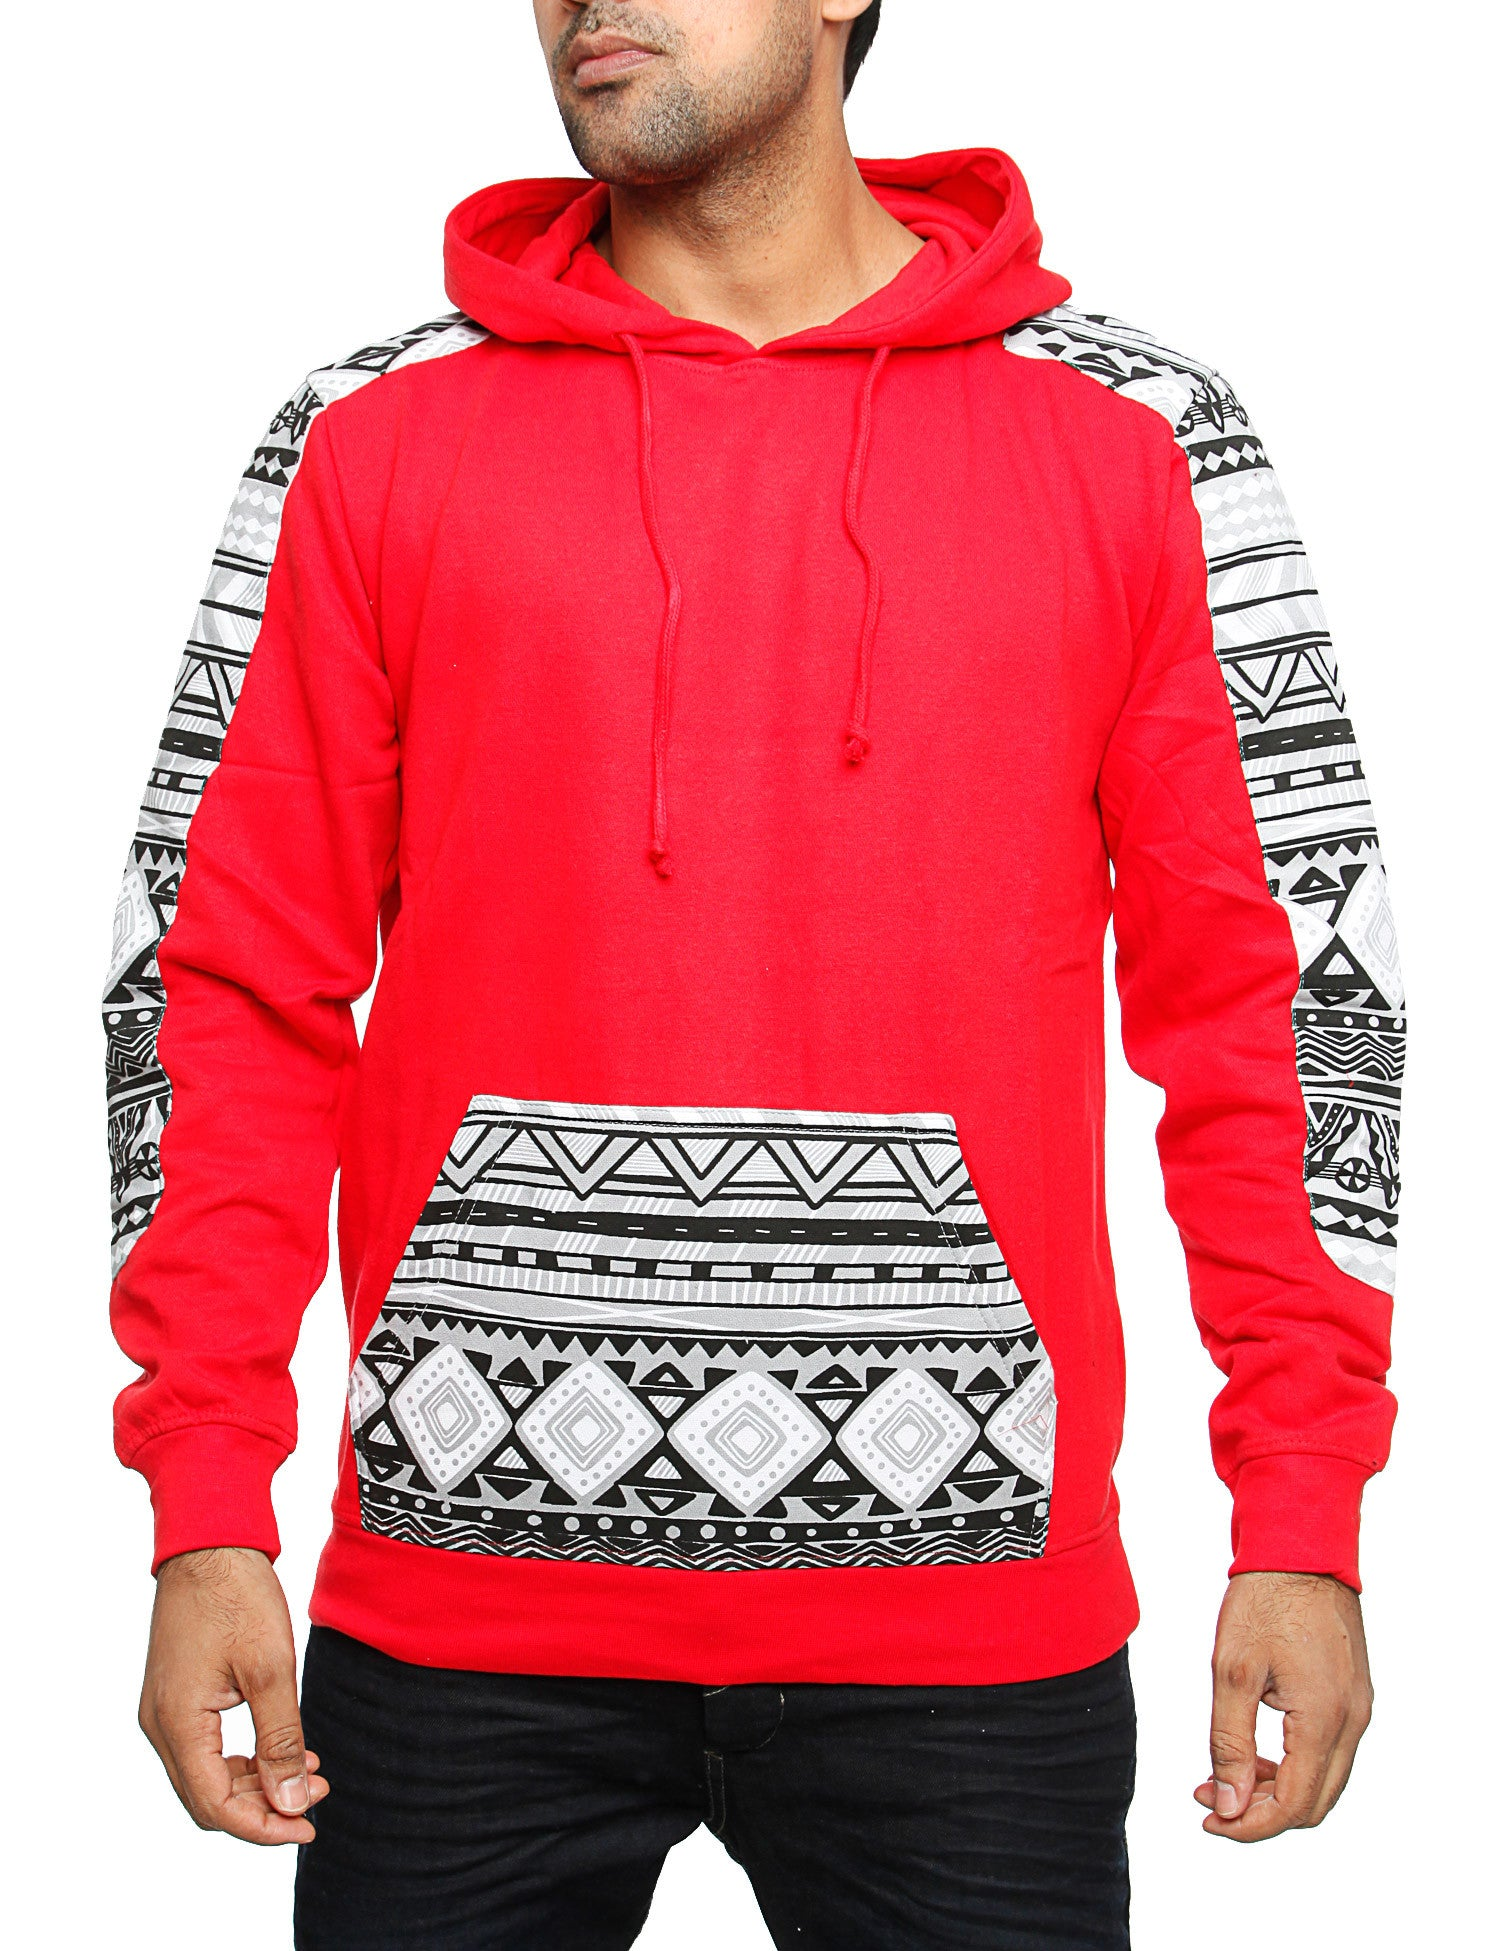 Imperious ´Aztec´ Hoody HS29 Red